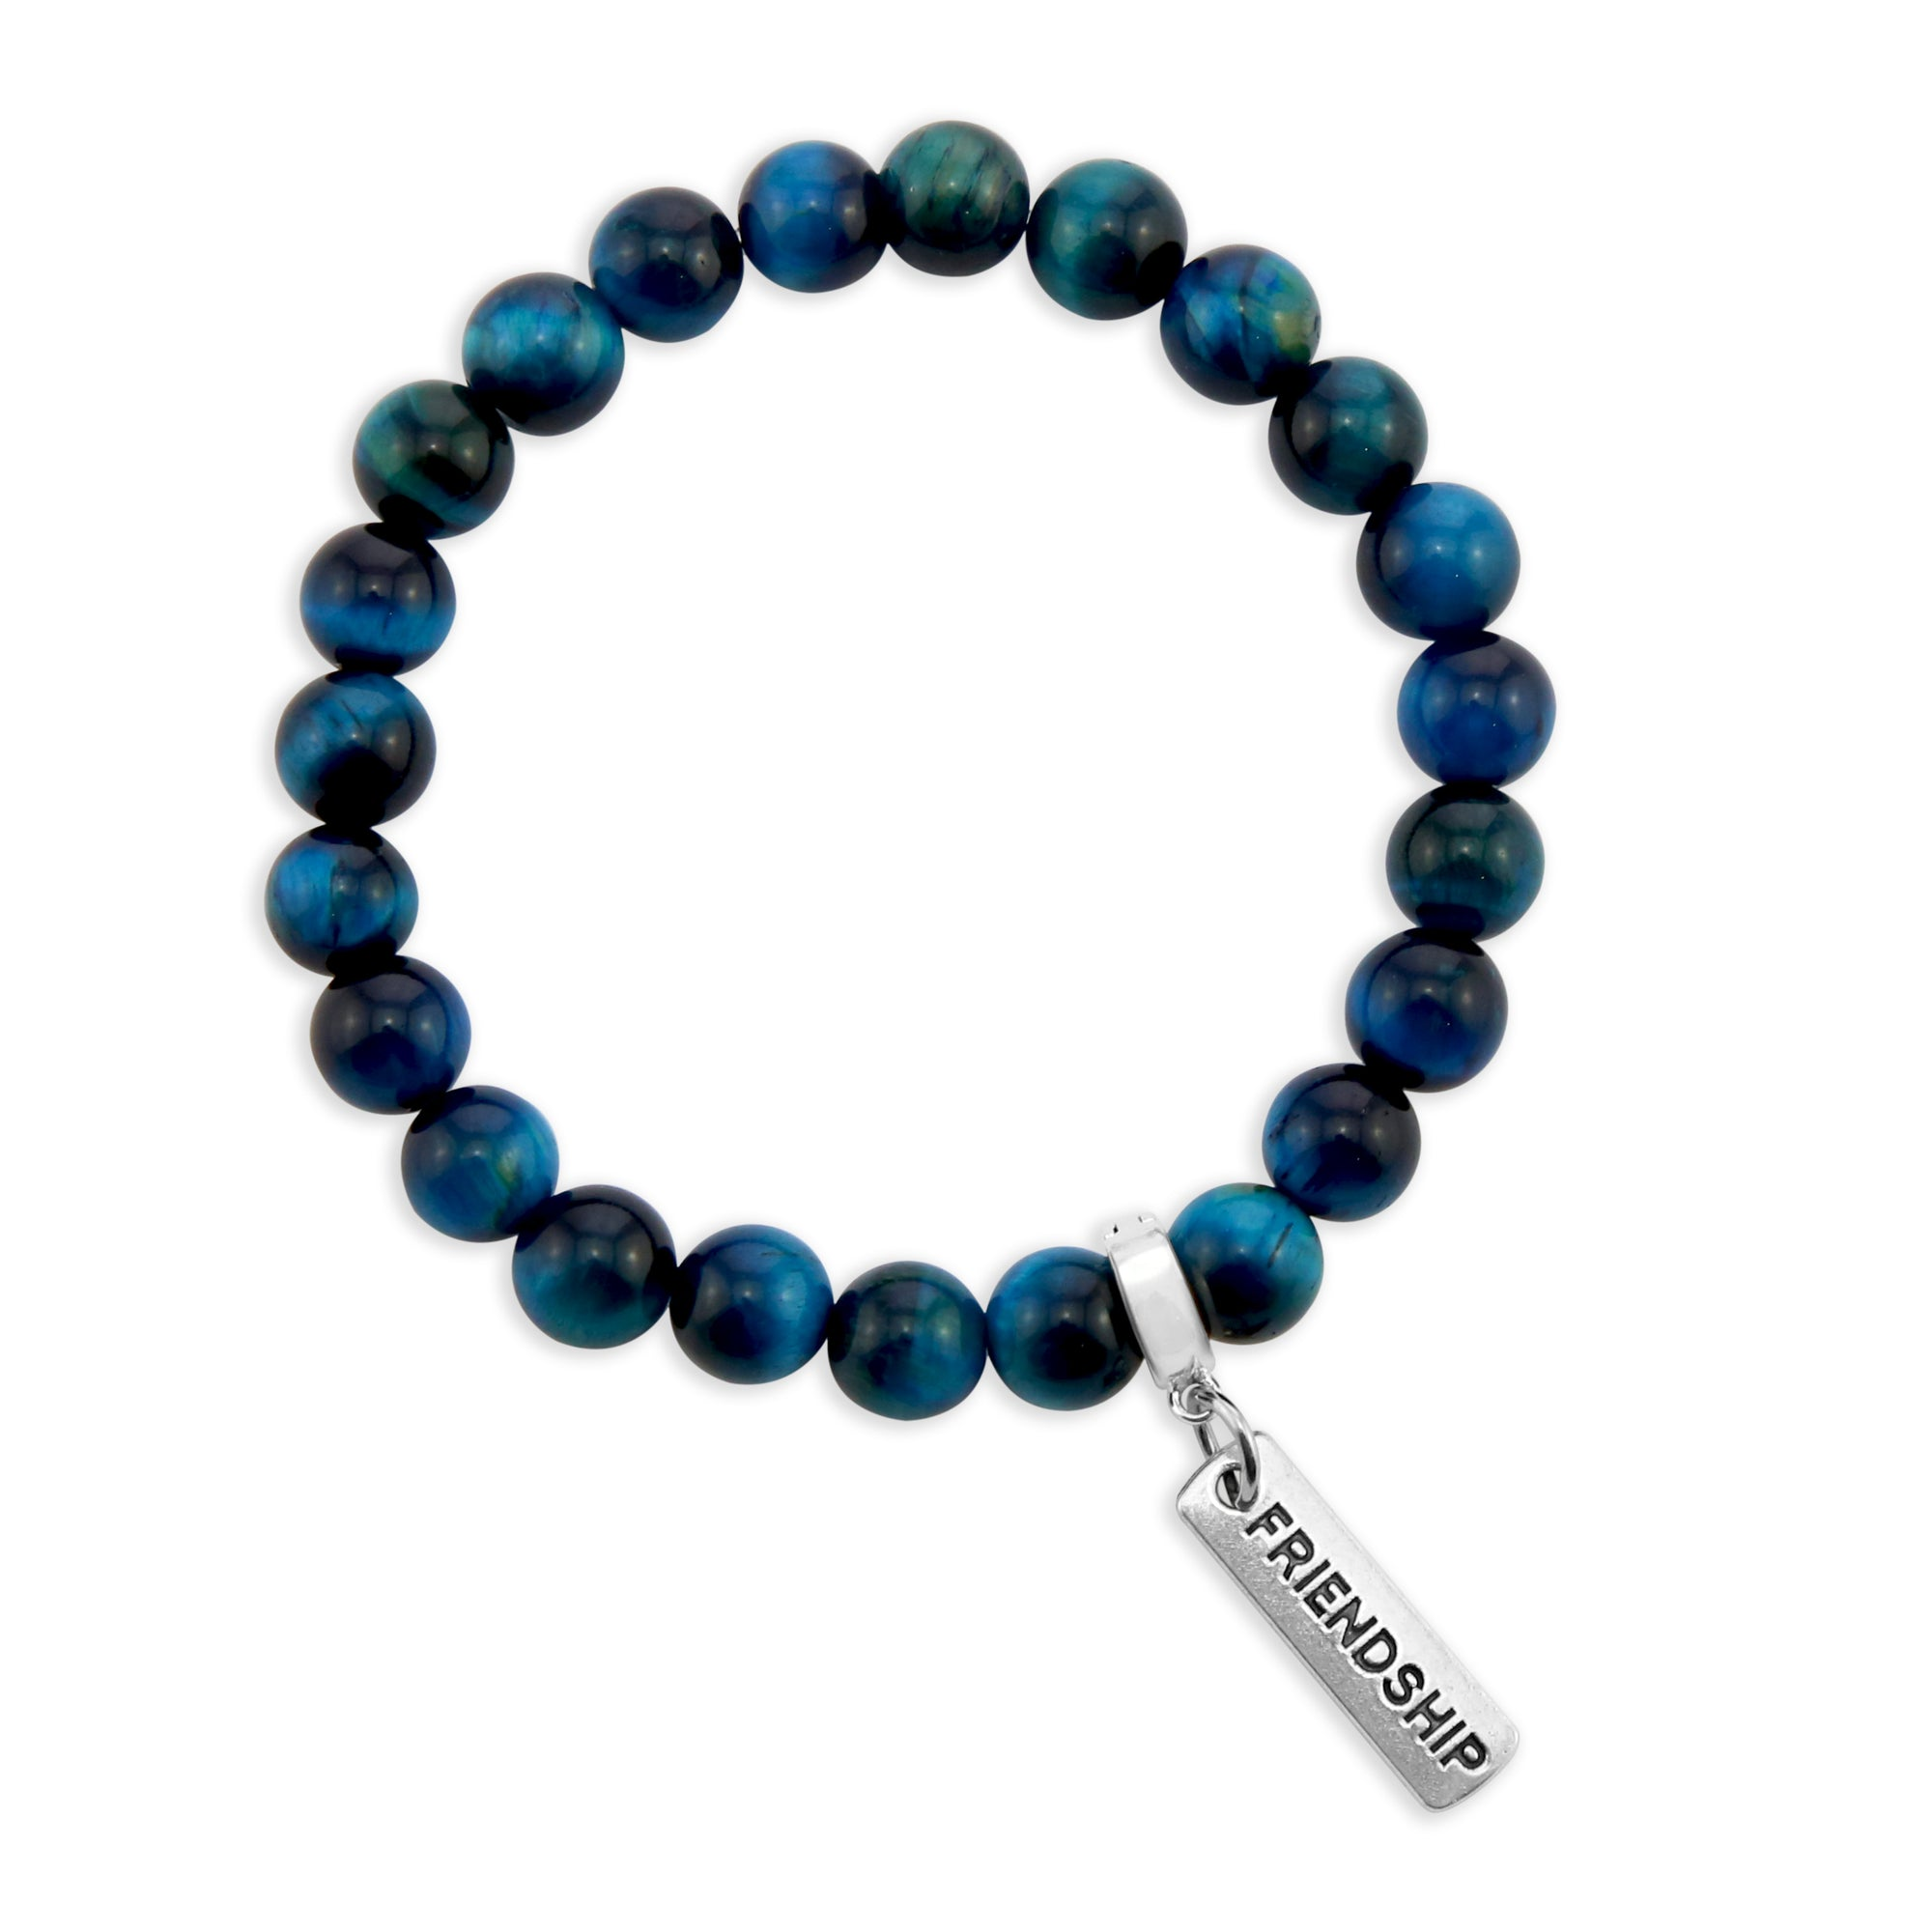 LIMITED EDITION Precious Stones - Teal Tigers Eye 8mm bead bracelet - with Word Charms (3014)